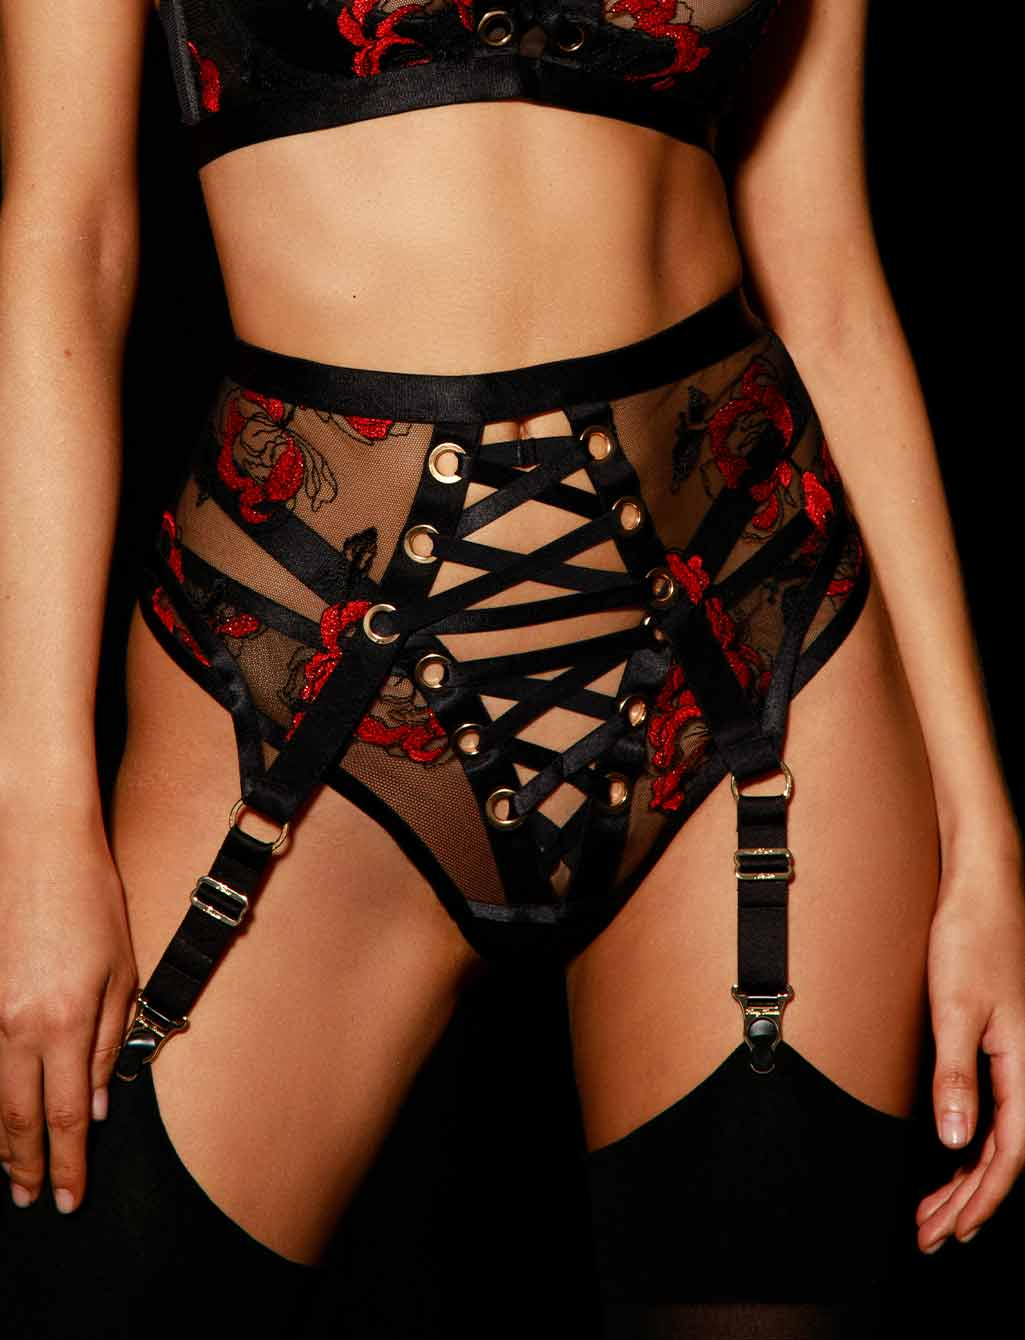 Freyah Lace Black & Red Garter Belt